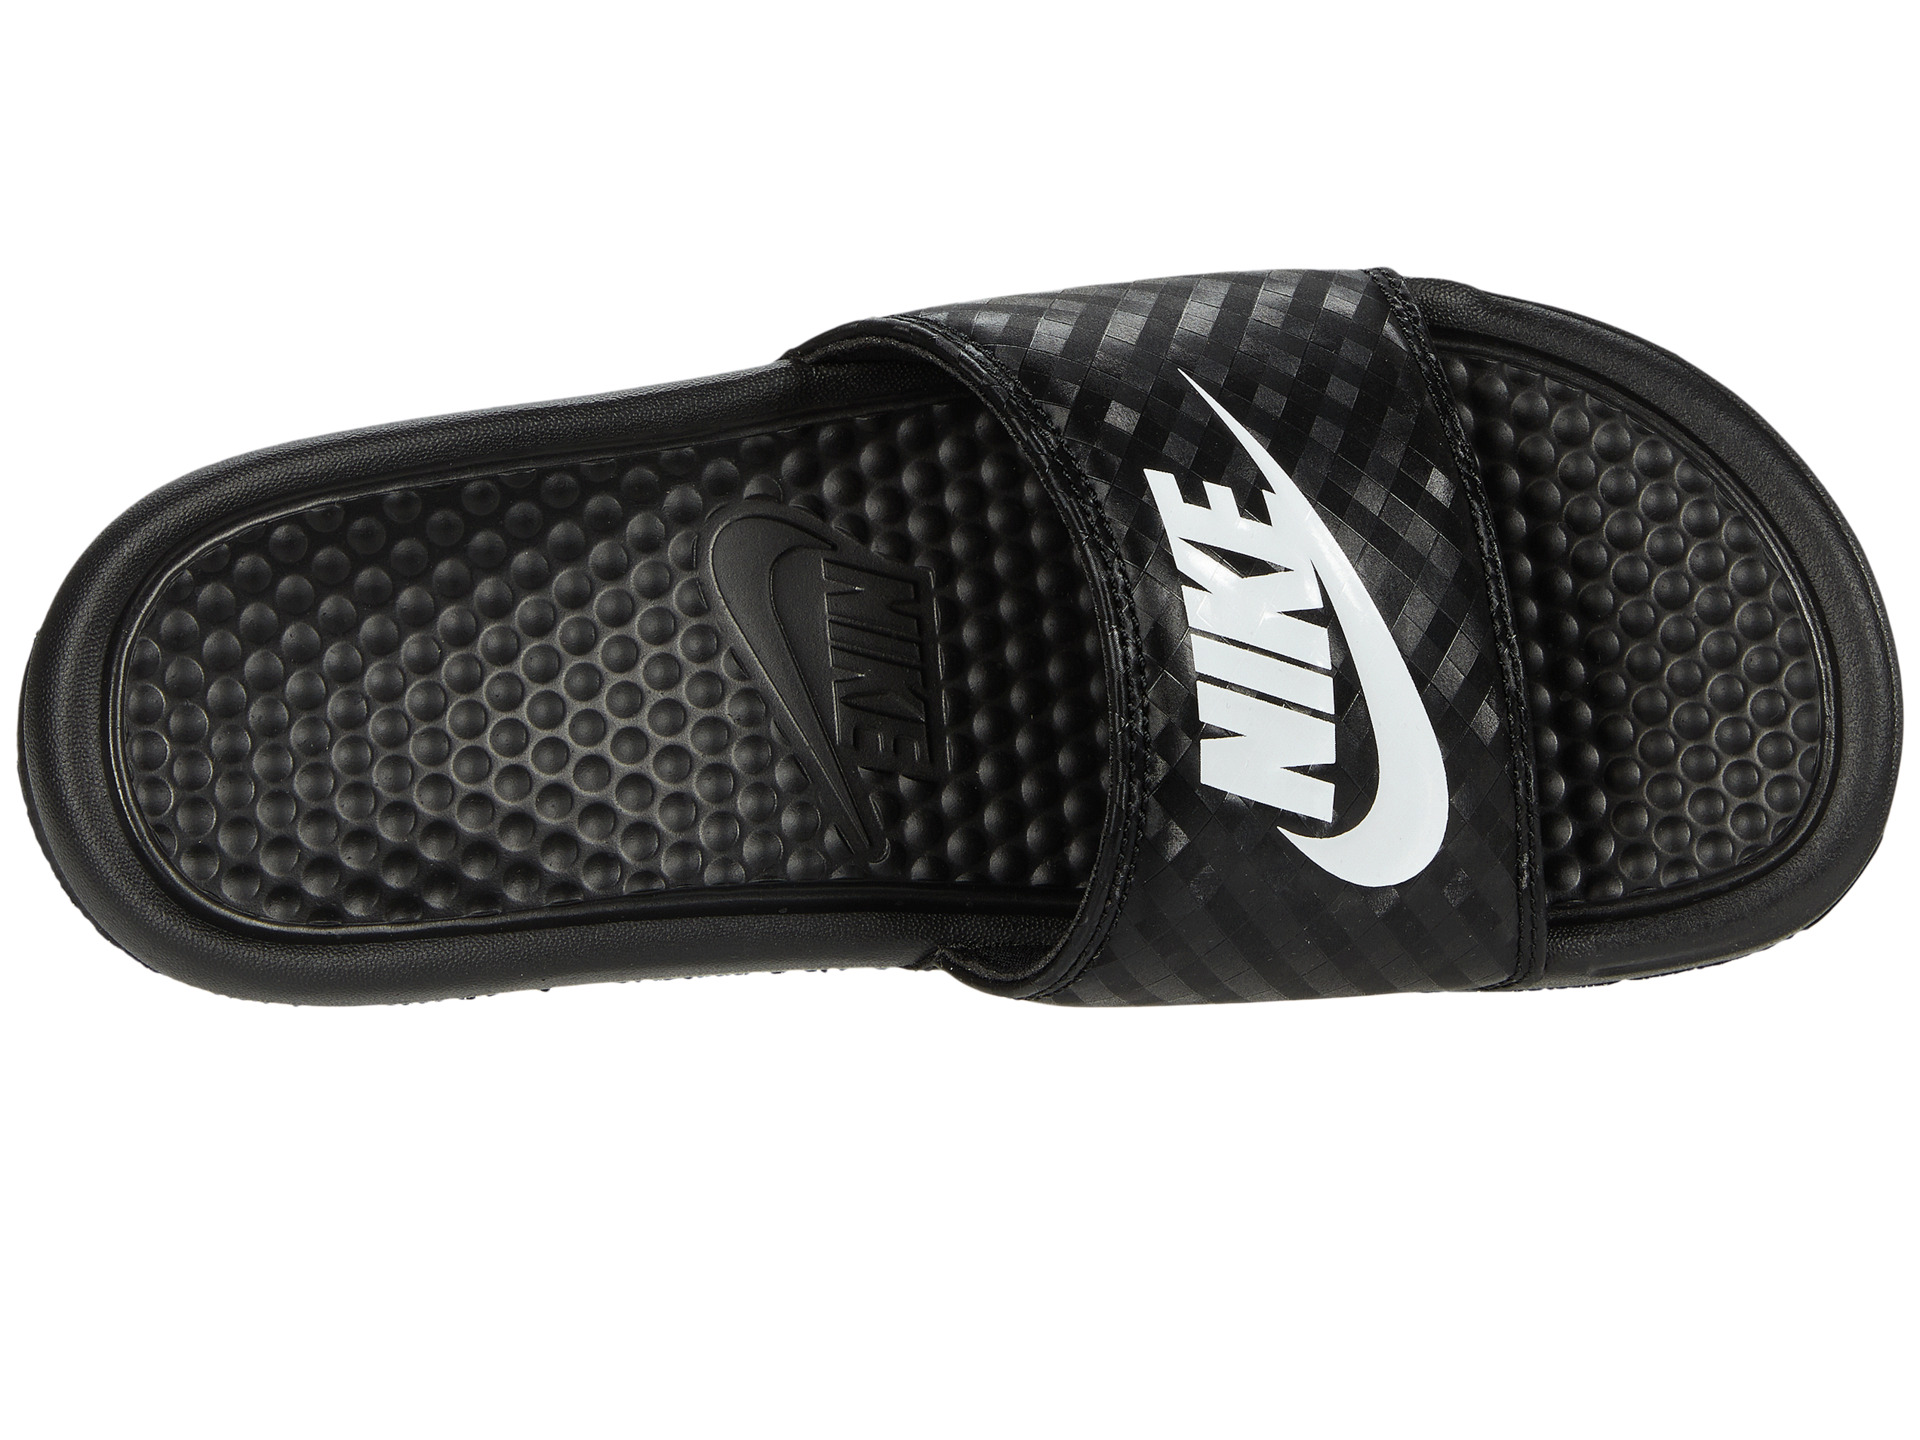 Luxury Nothing Delivers Comfort And Style Quite Like Nike Slides